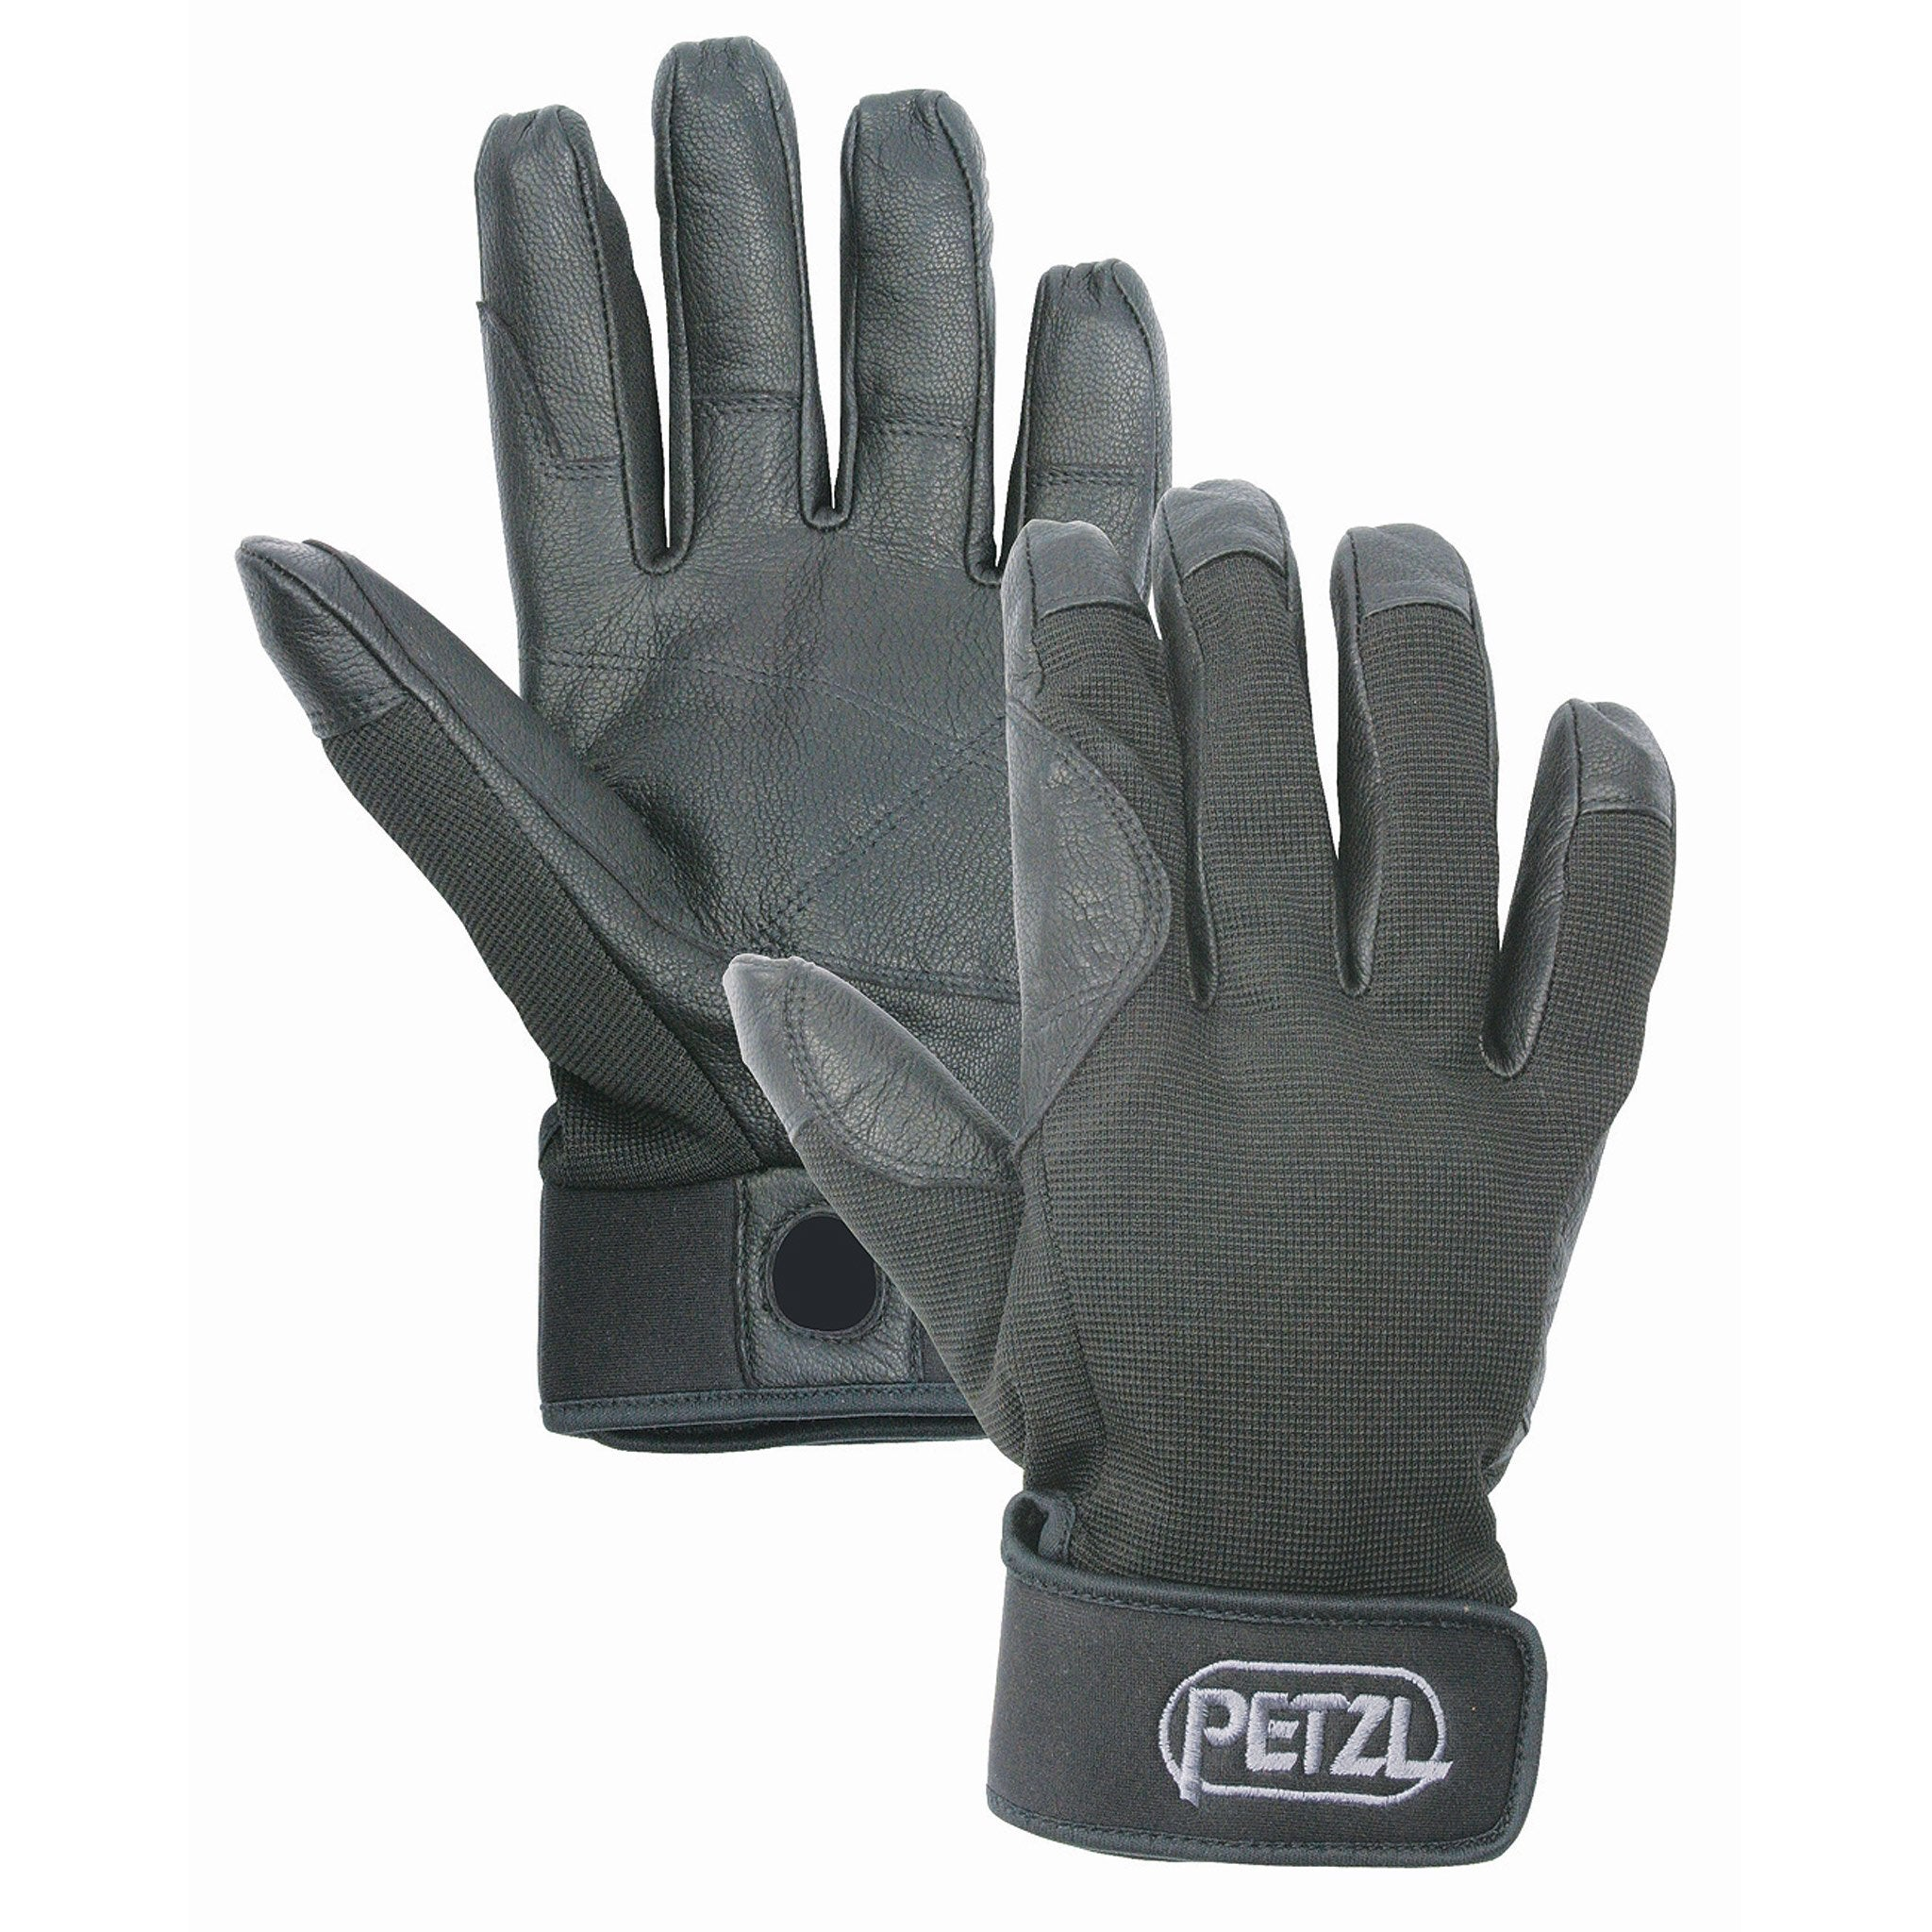 Petzl Cordex Plus Gloves - Arthur Beale